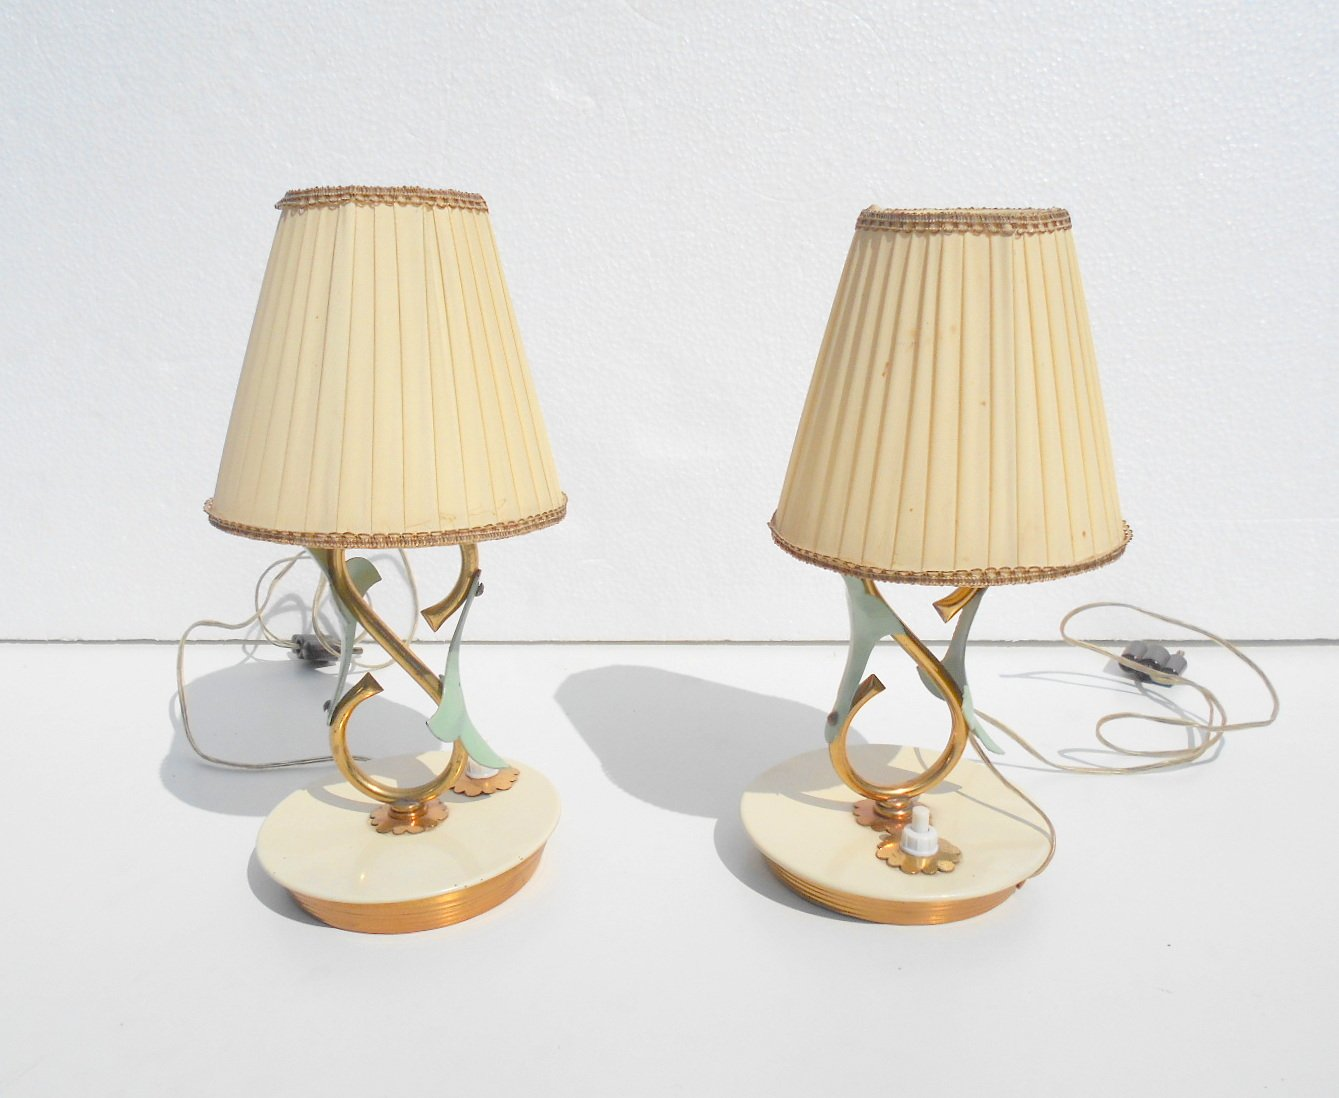 Small Table Lamps By Angelo Lelii For Arredoluce 1940s Set Of 2 For Sale At Pamono